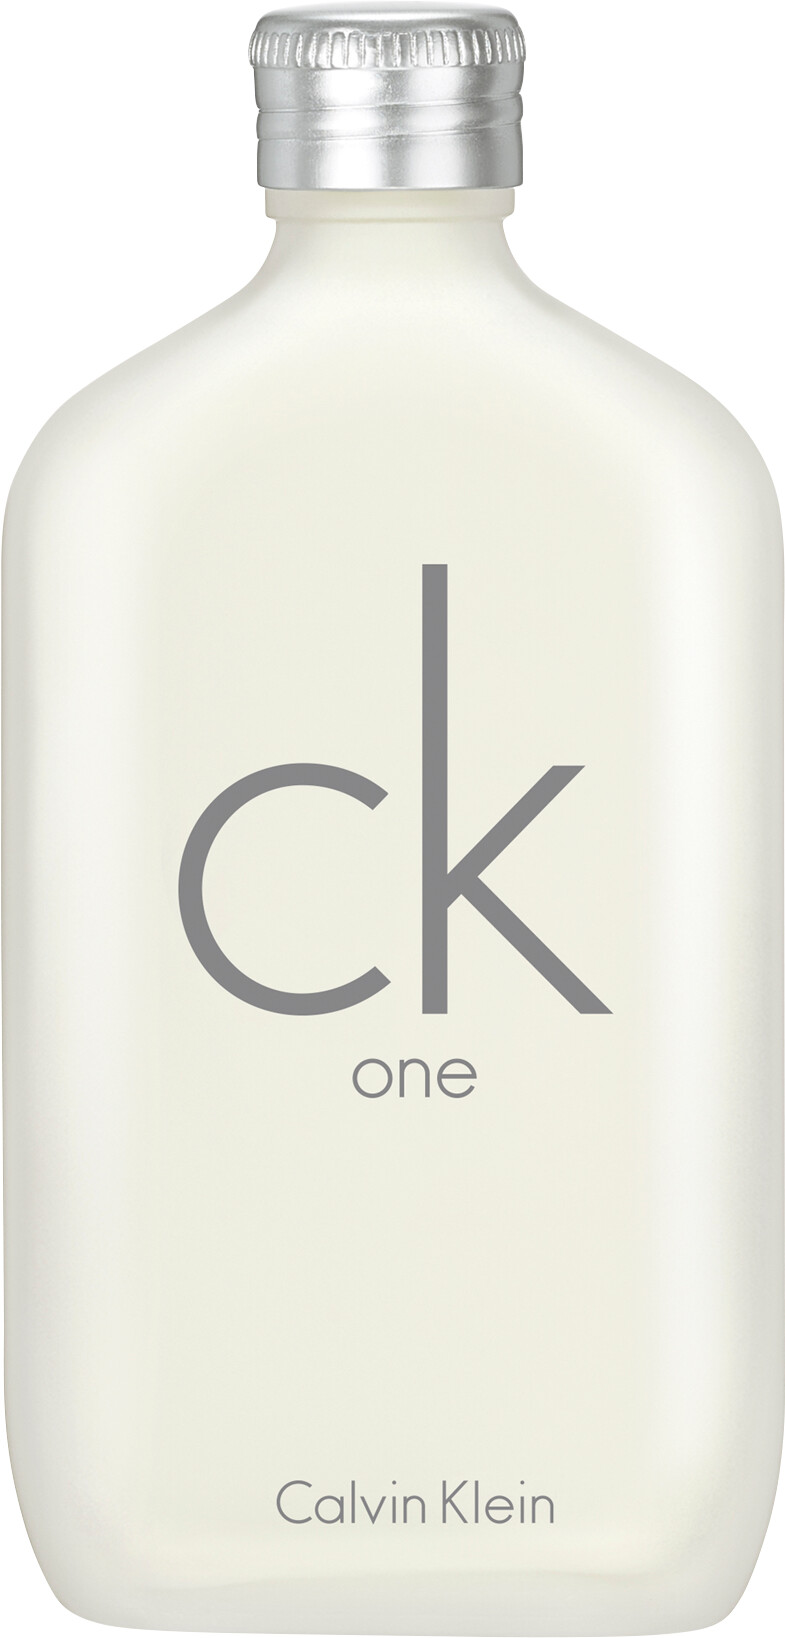 Calvin klein ck one eau de toilette spray for Arrivee d eau toilette